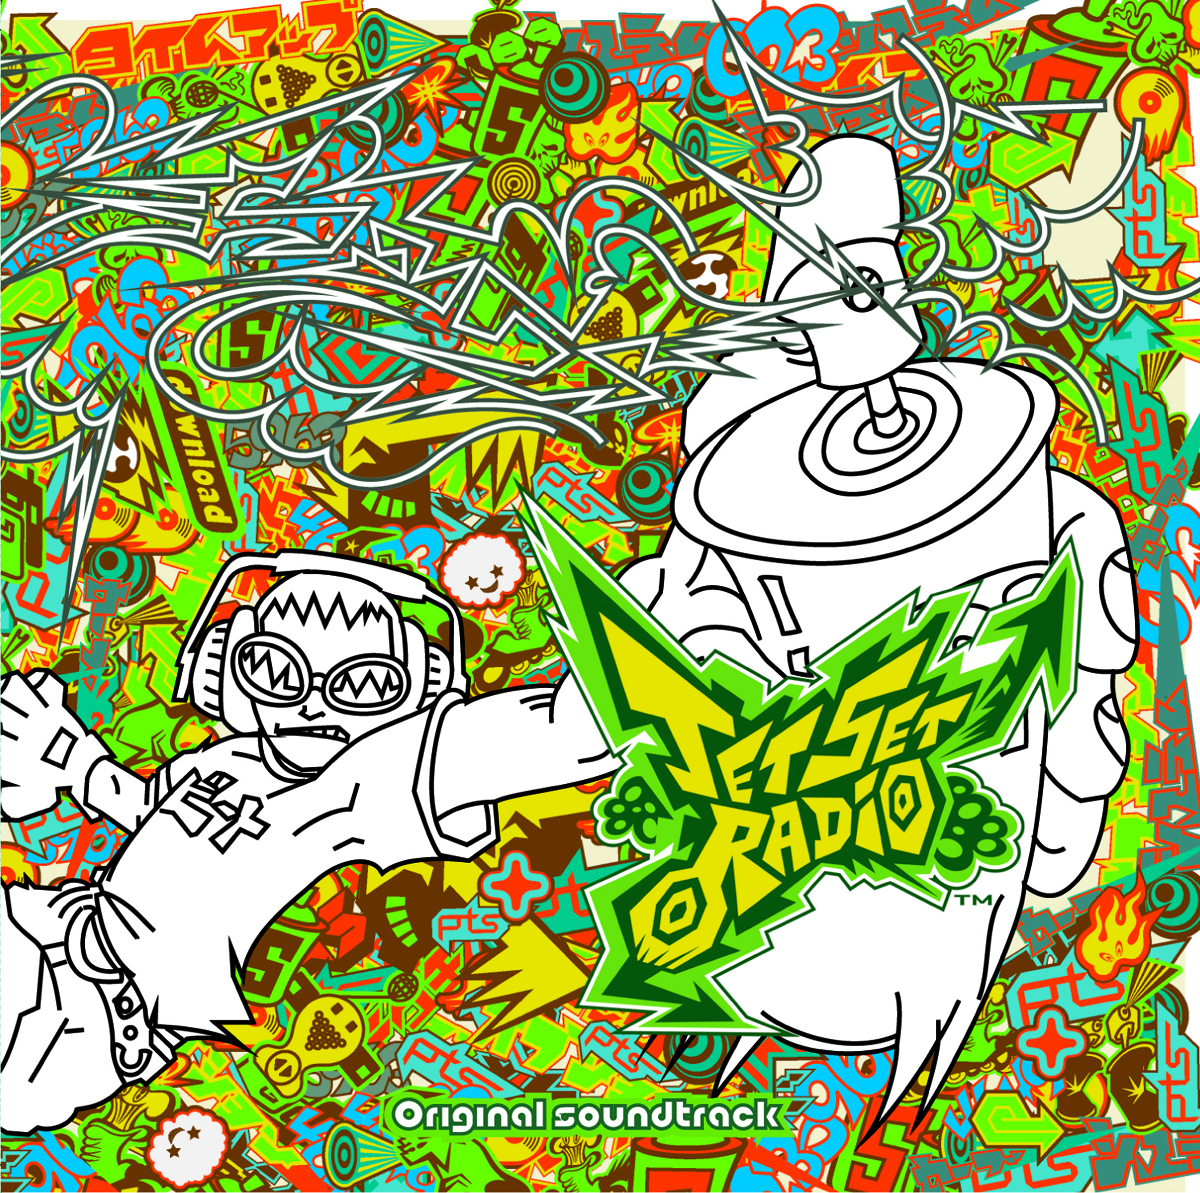 JET SET RADIO OST CD